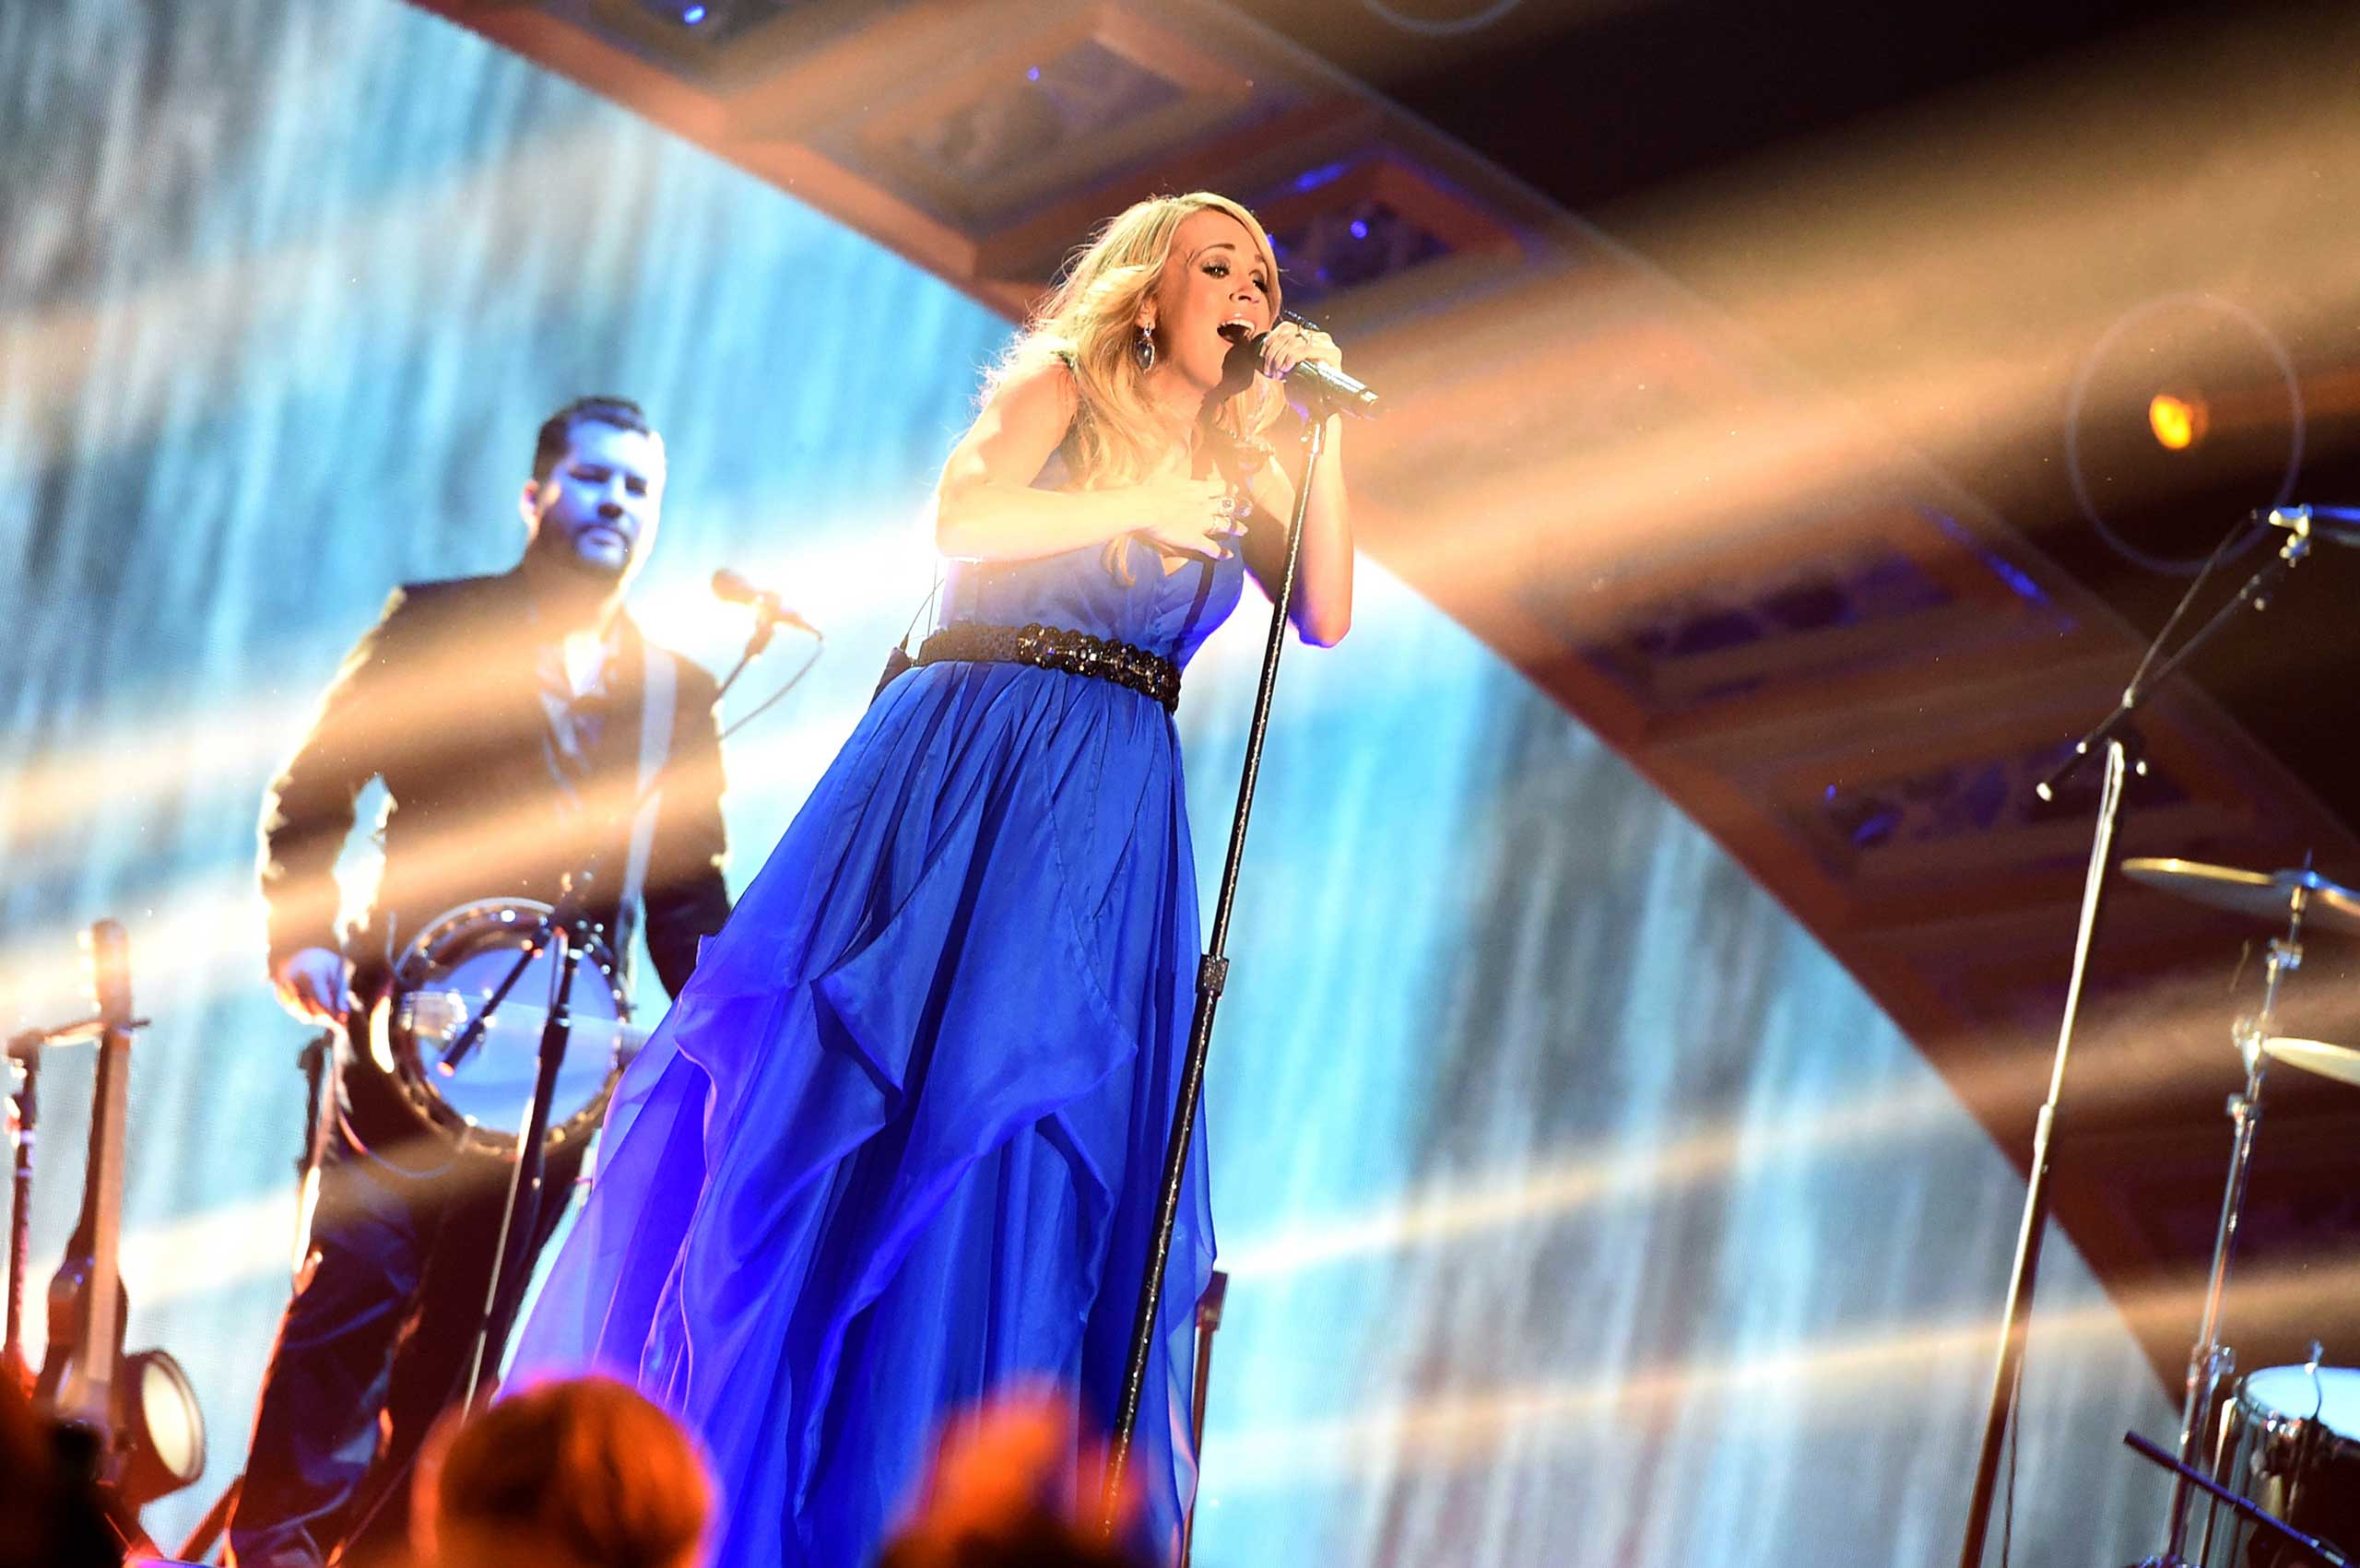 <b>Carrie Underwood</b>, winner of <i>American Idol</i> season 4, performs at the 2014 American Country Countdown Awards at Music City Center in Nashville on Dec. 15, 2014.